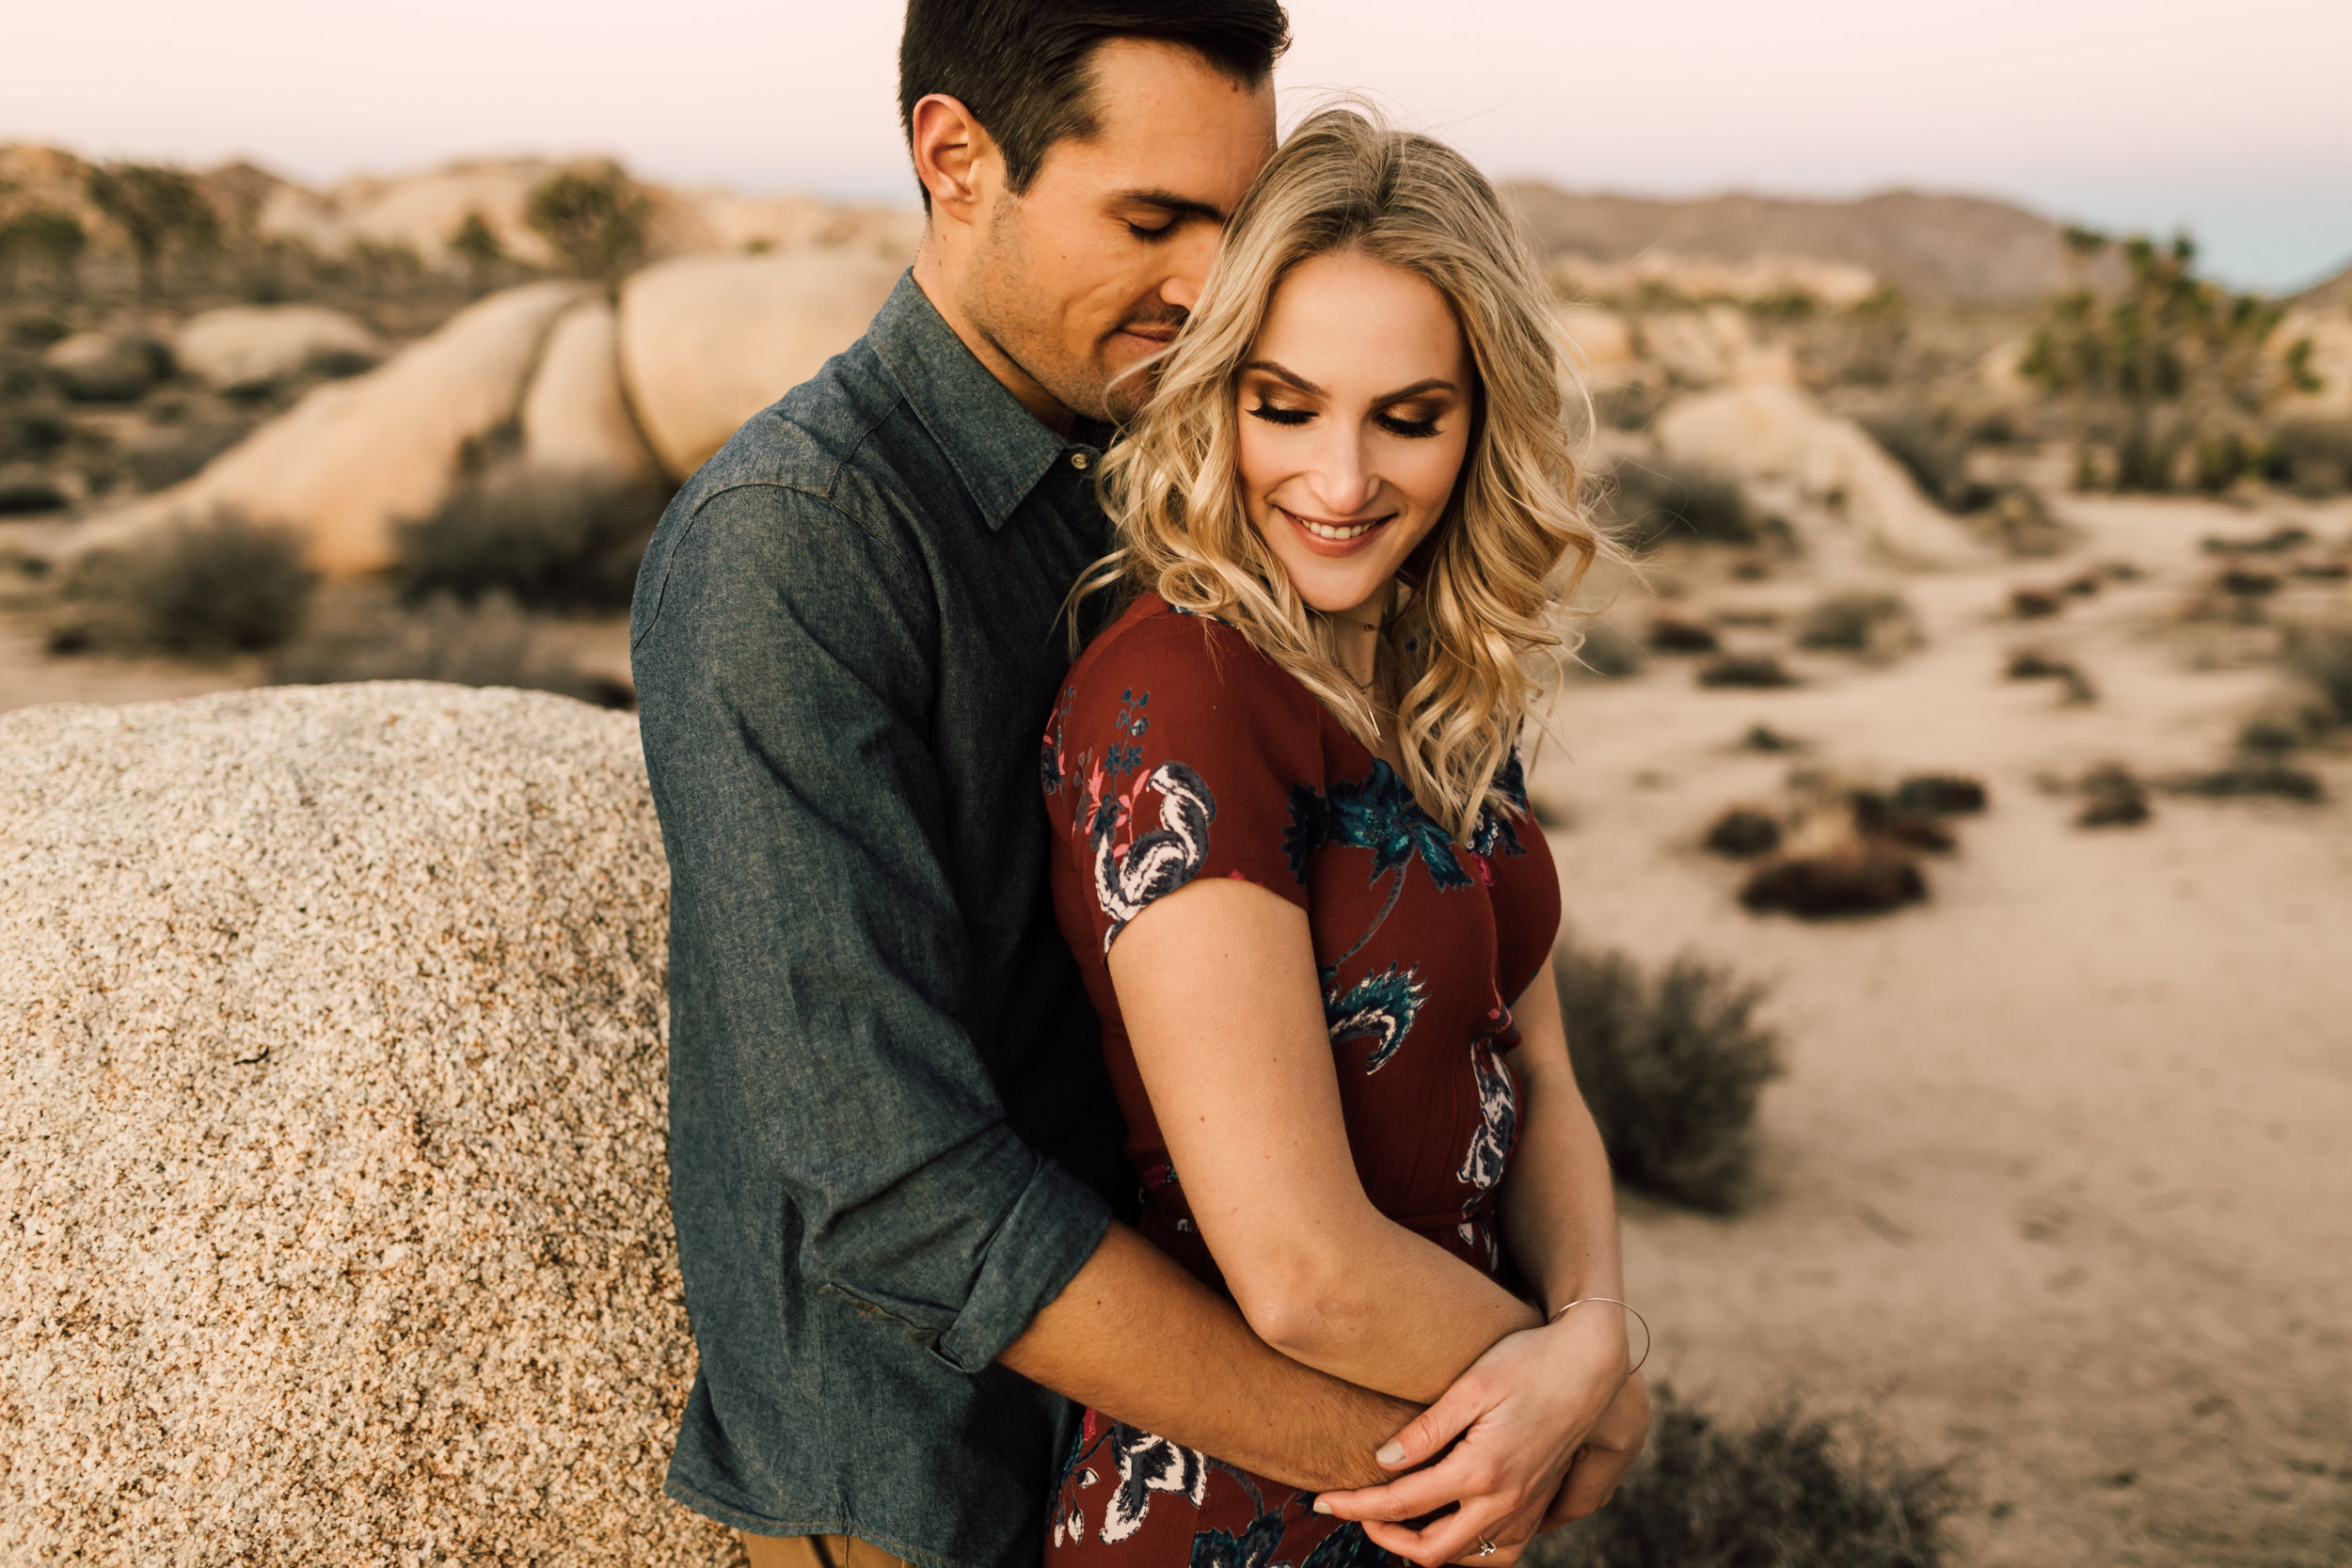 miranda+taylorengaged-138.jpg